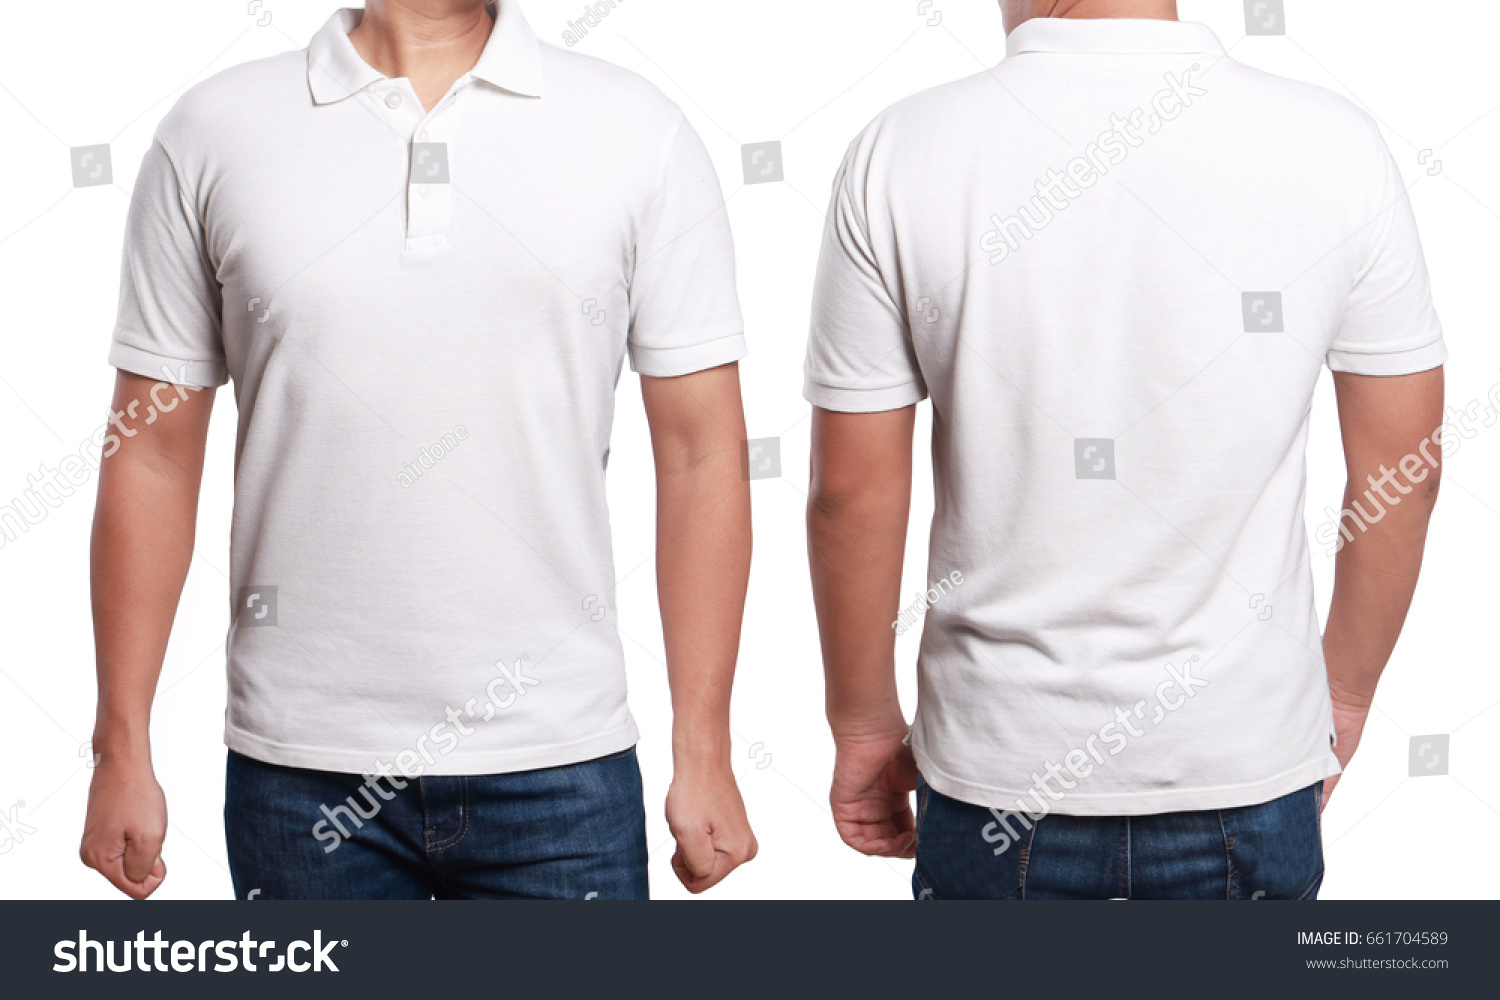 T shirt plain white front and back - White Polo T Shirt Mock Up Front And Back View Isolated Male